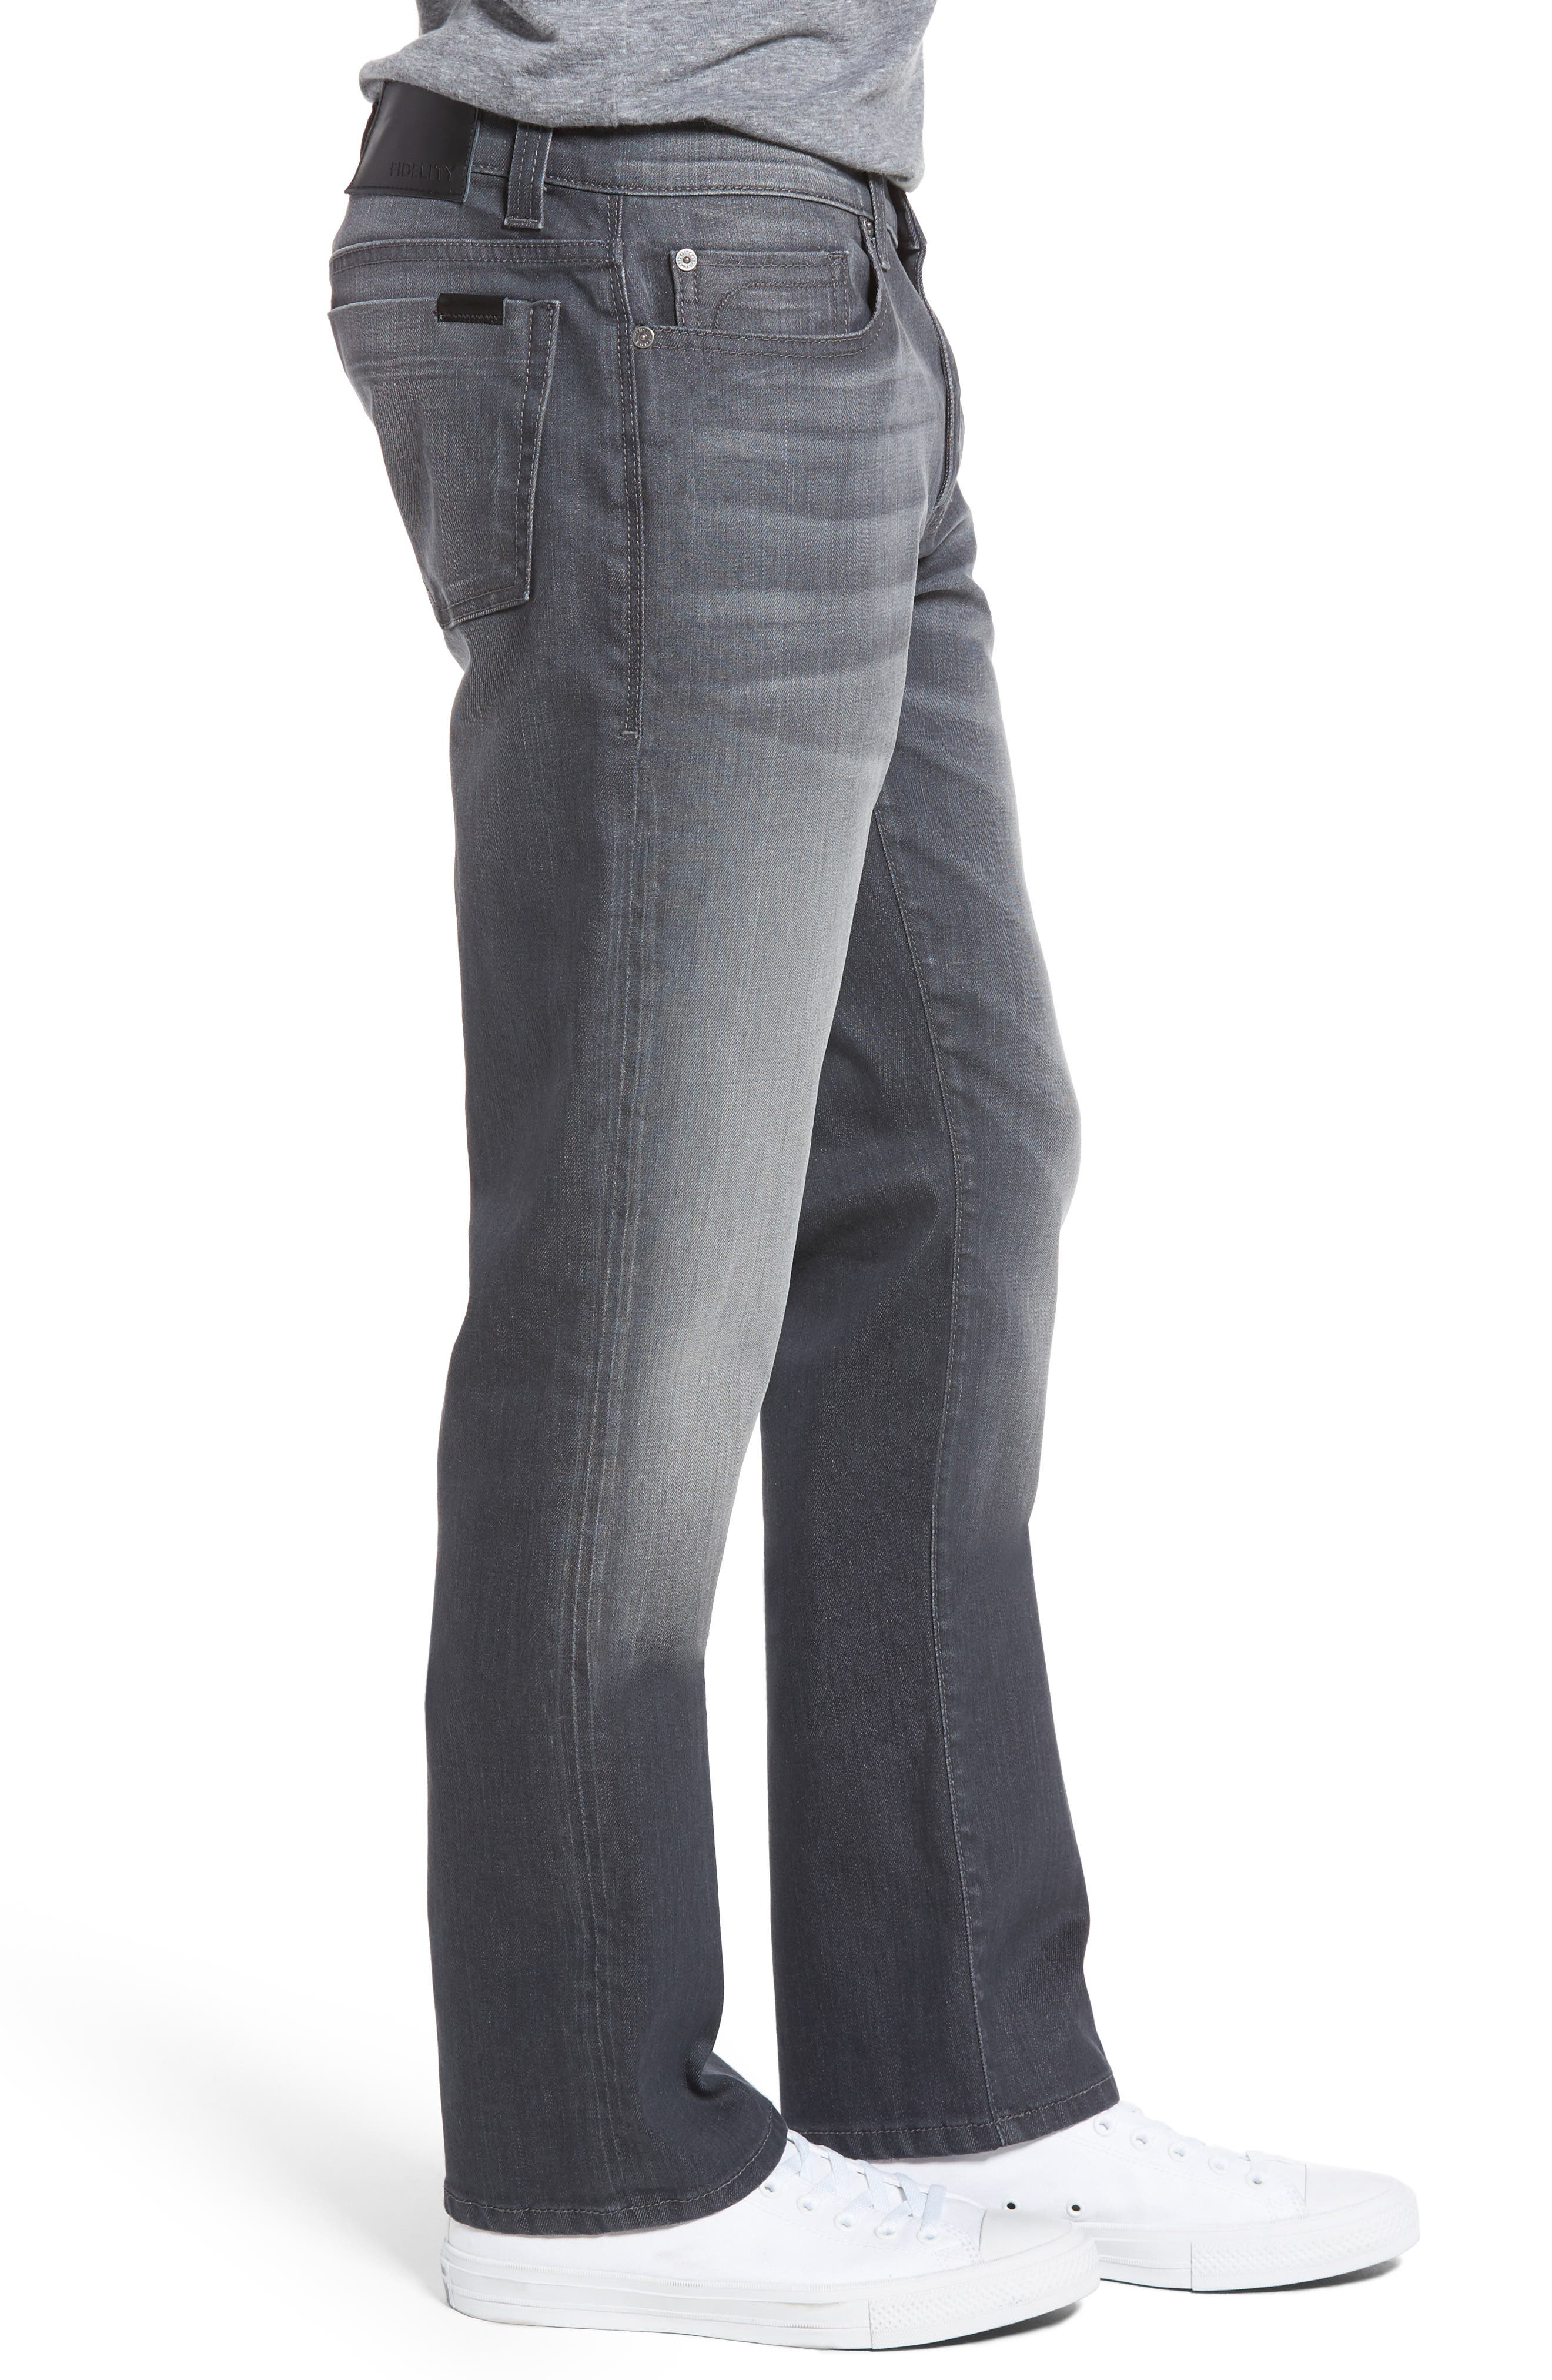 Impala Straight Leg Jeans,                             Alternate thumbnail 3, color,                             010